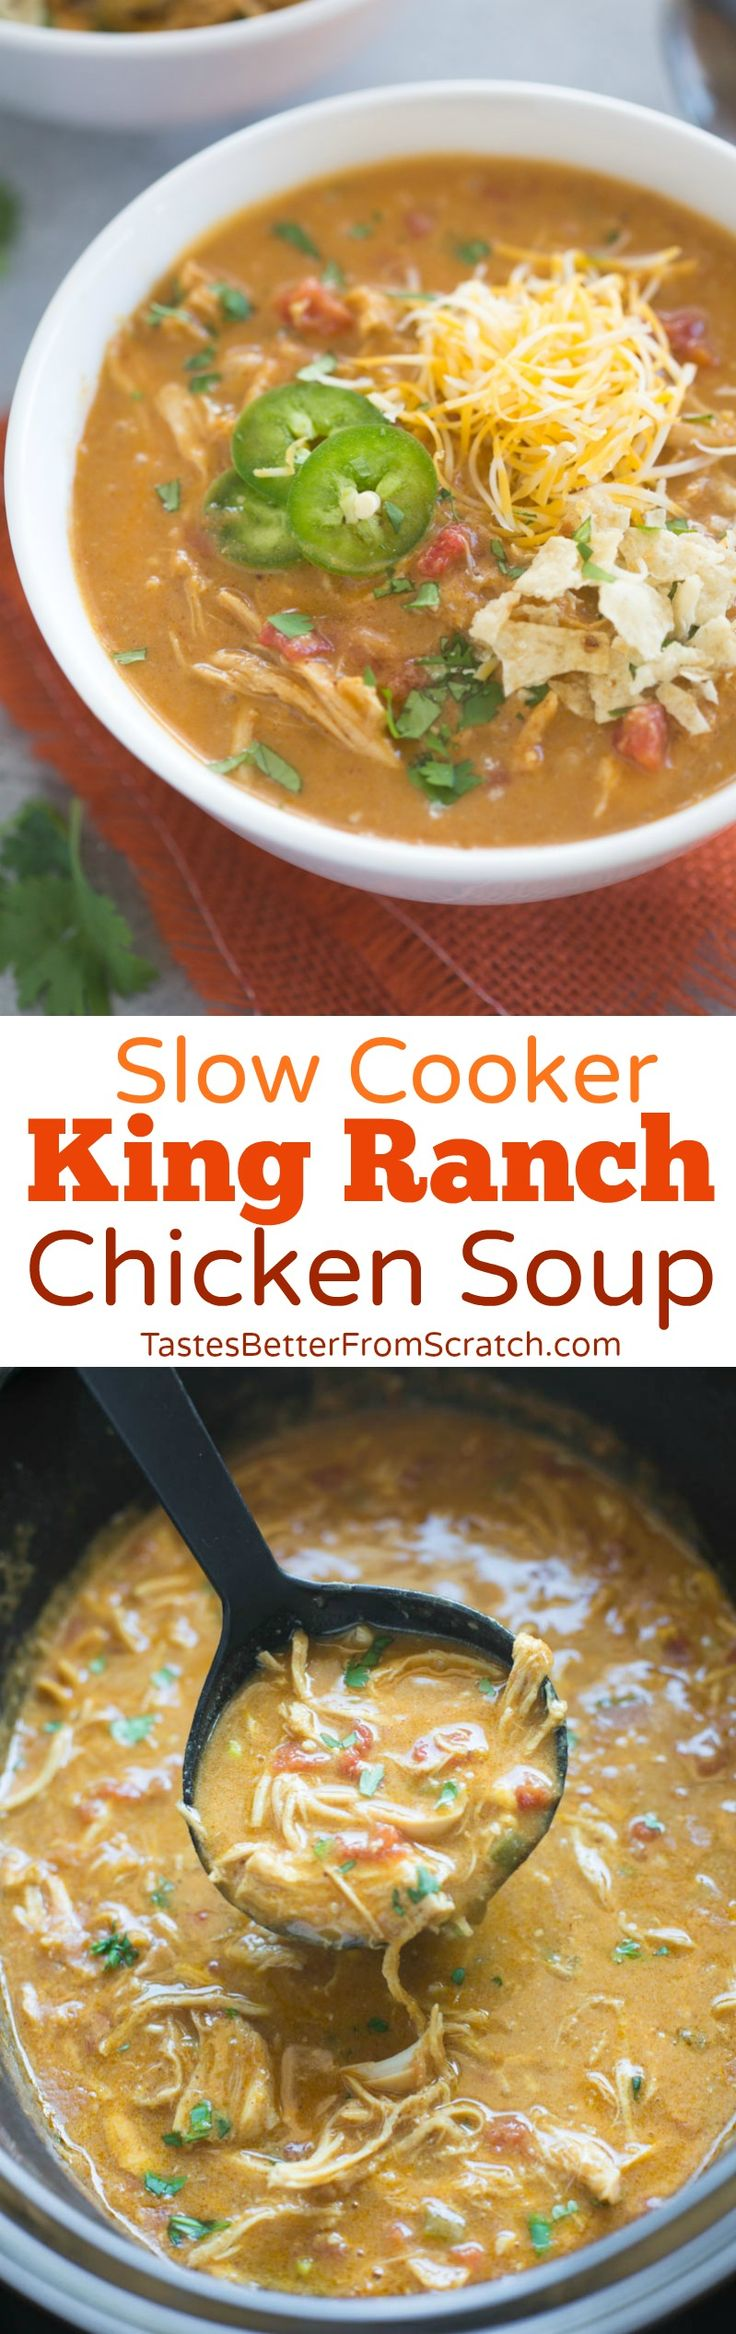 There is so much to love about this delicious Slow Cooker King Ranch Chicken Soup! It's one of the easiest soups to make but the bold and flavorful Tex-Mex inspired flavors really can't be beat! Total bonus that the slow cooker does most of the work. | Tastes Better From Scratch